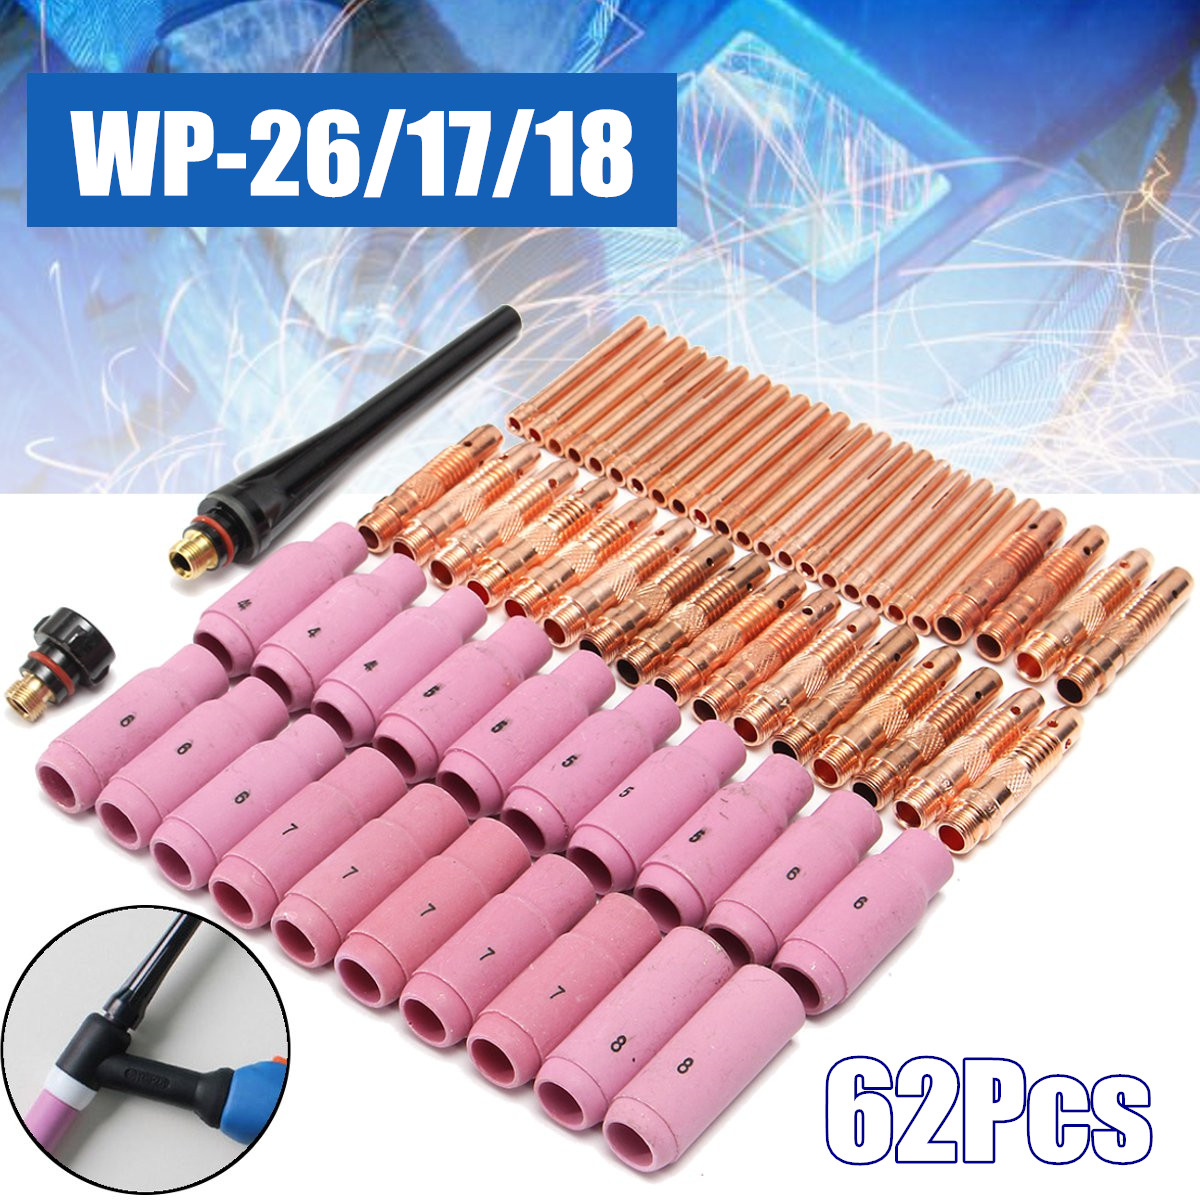 New 62Pcs TIG Welding Torch Ceramic Copper Nozzle Pyrex Cup for Welding Machine WP-26/17/18 KitNew 62Pcs TIG Welding Torch Ceramic Copper Nozzle Pyrex Cup for Welding Machine WP-26/17/18 Kit